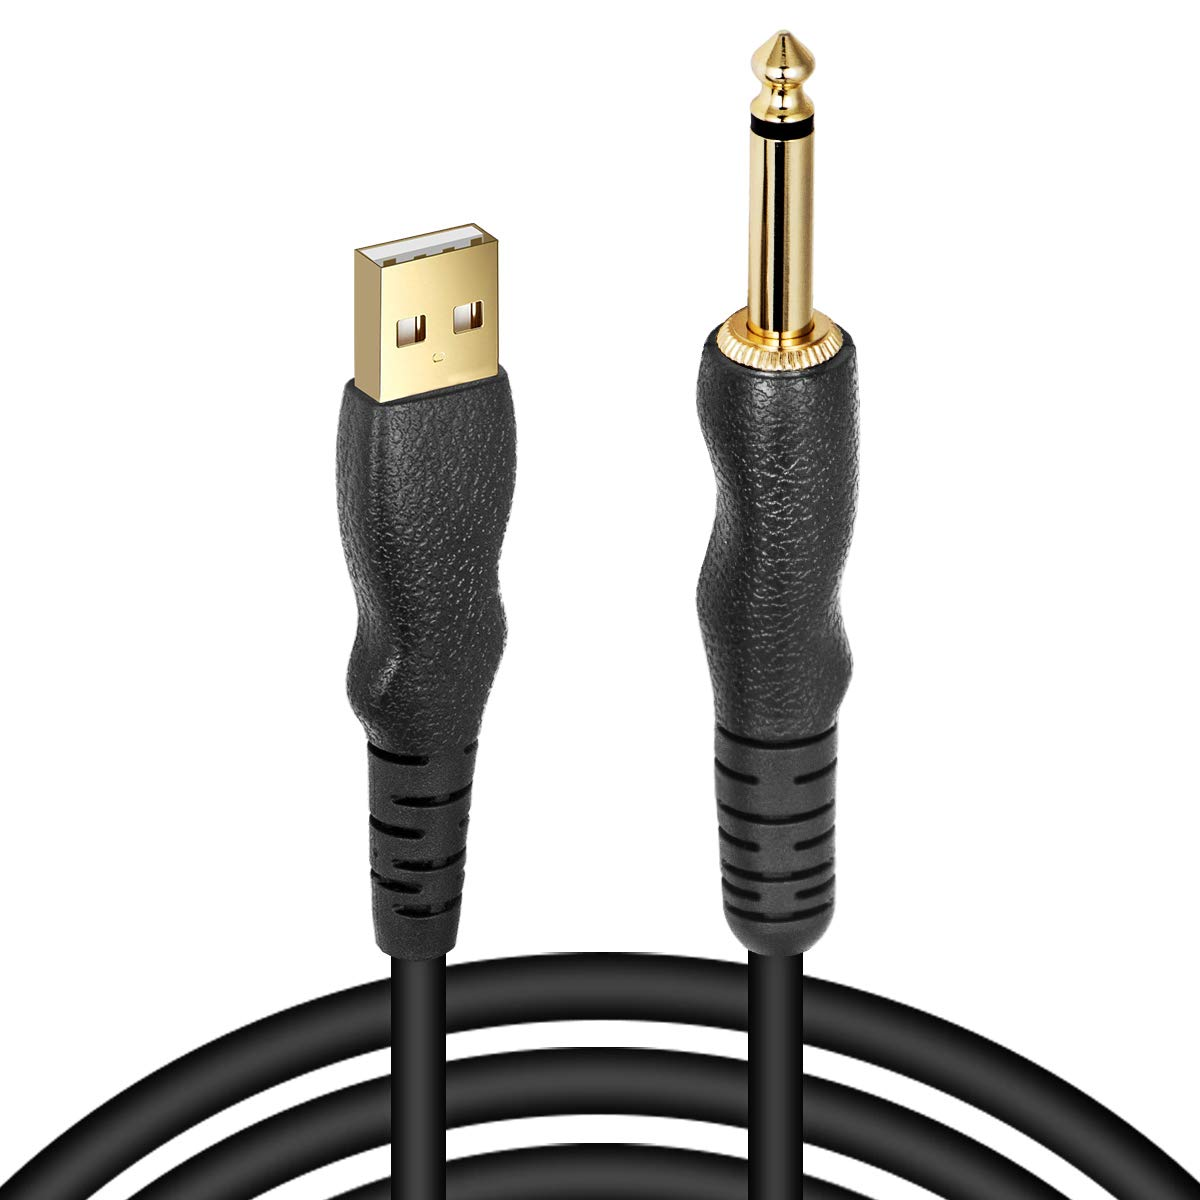 """EBXYA 1/4"""" TS Guitar to USB PC Cable 10 Feet - Premium Cable with Extra to USB C Cable for Your Mac Book"""